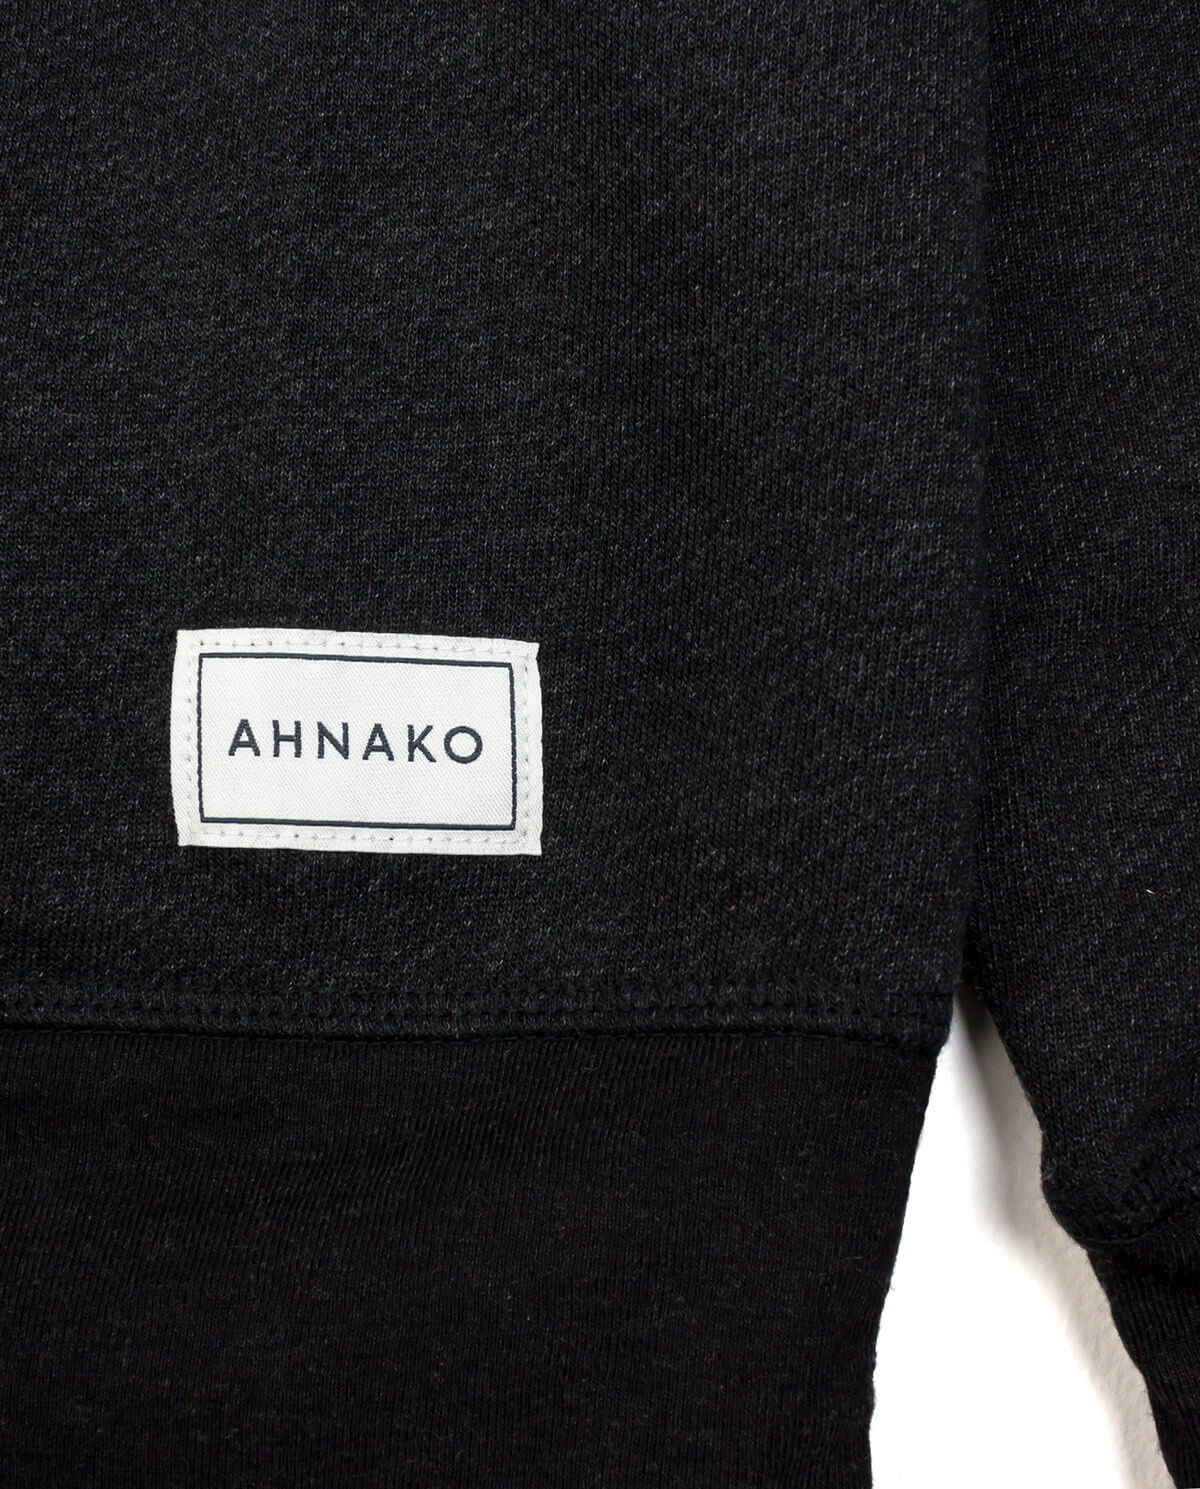 Ahnako Women's French Terry Boat Neck Sweater with Logo Patch - Charcoal - Patch Close Up